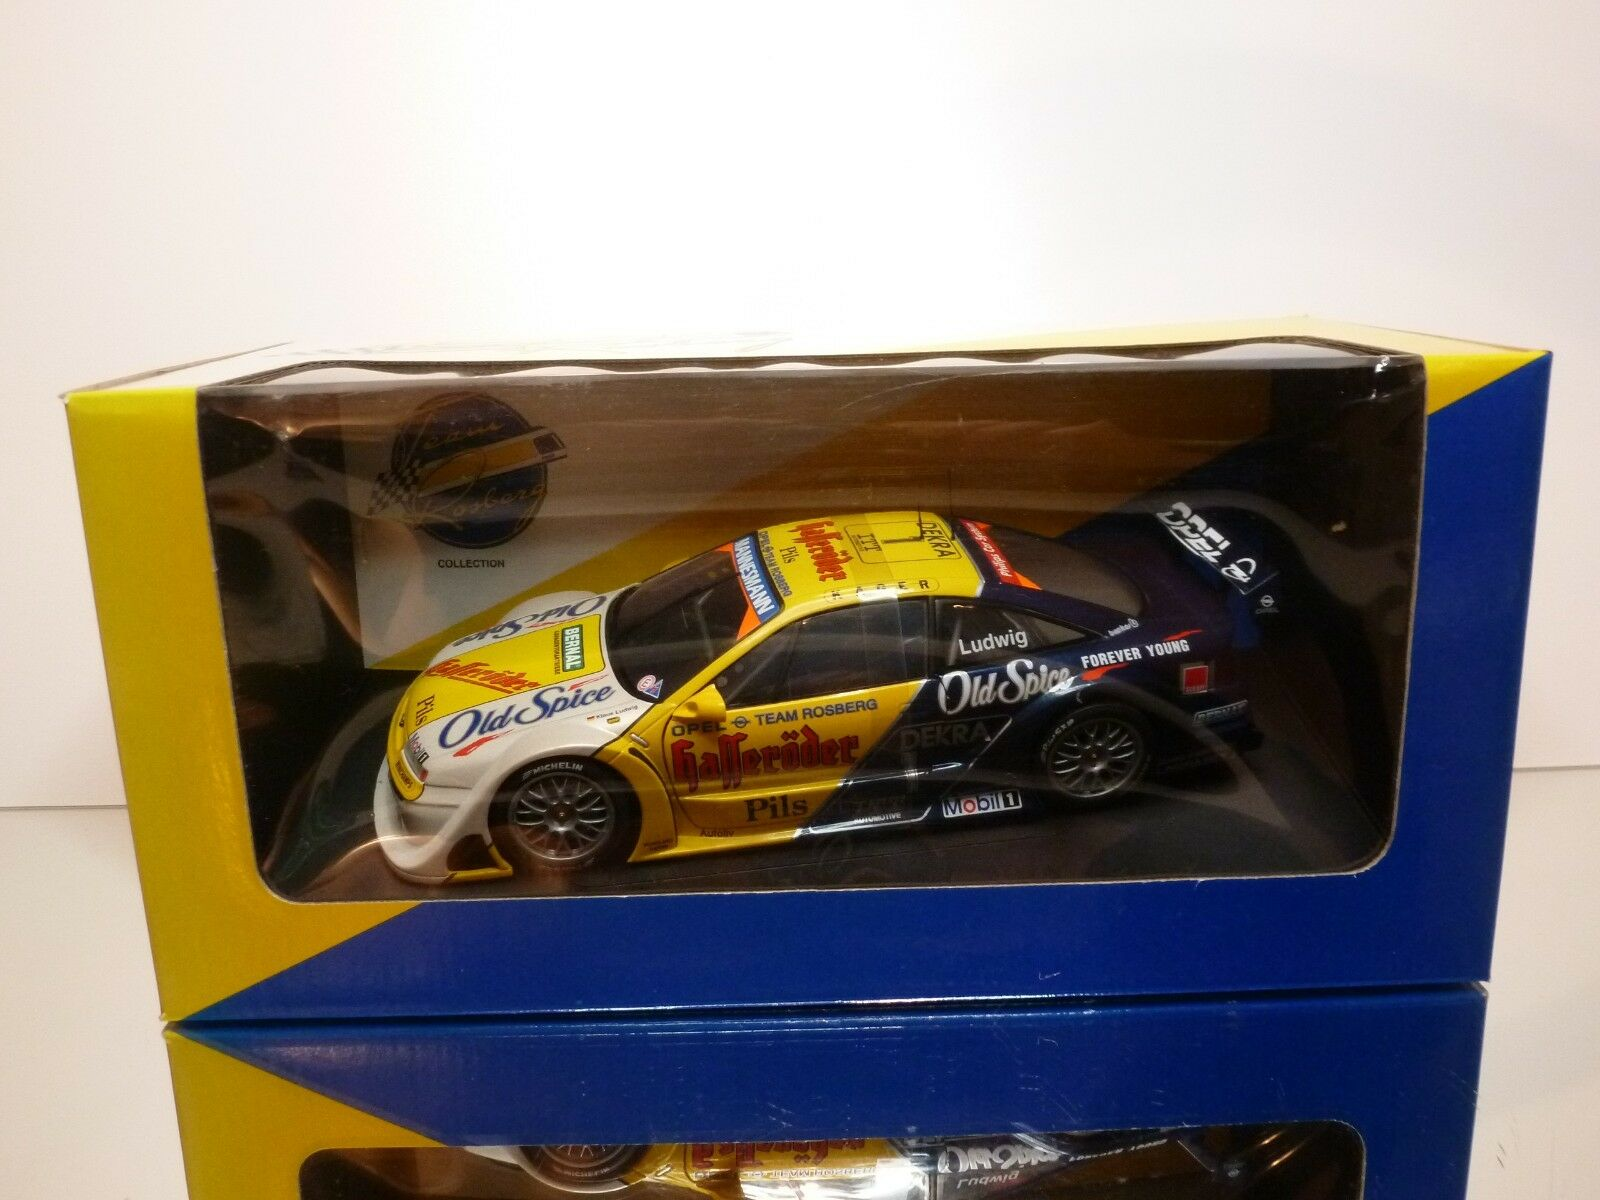 UT MODELS 954201 OPEL CALIBRA DTM 1995 HASSERODER LUDWIG 1:18 - EXCELLENT IN BOX